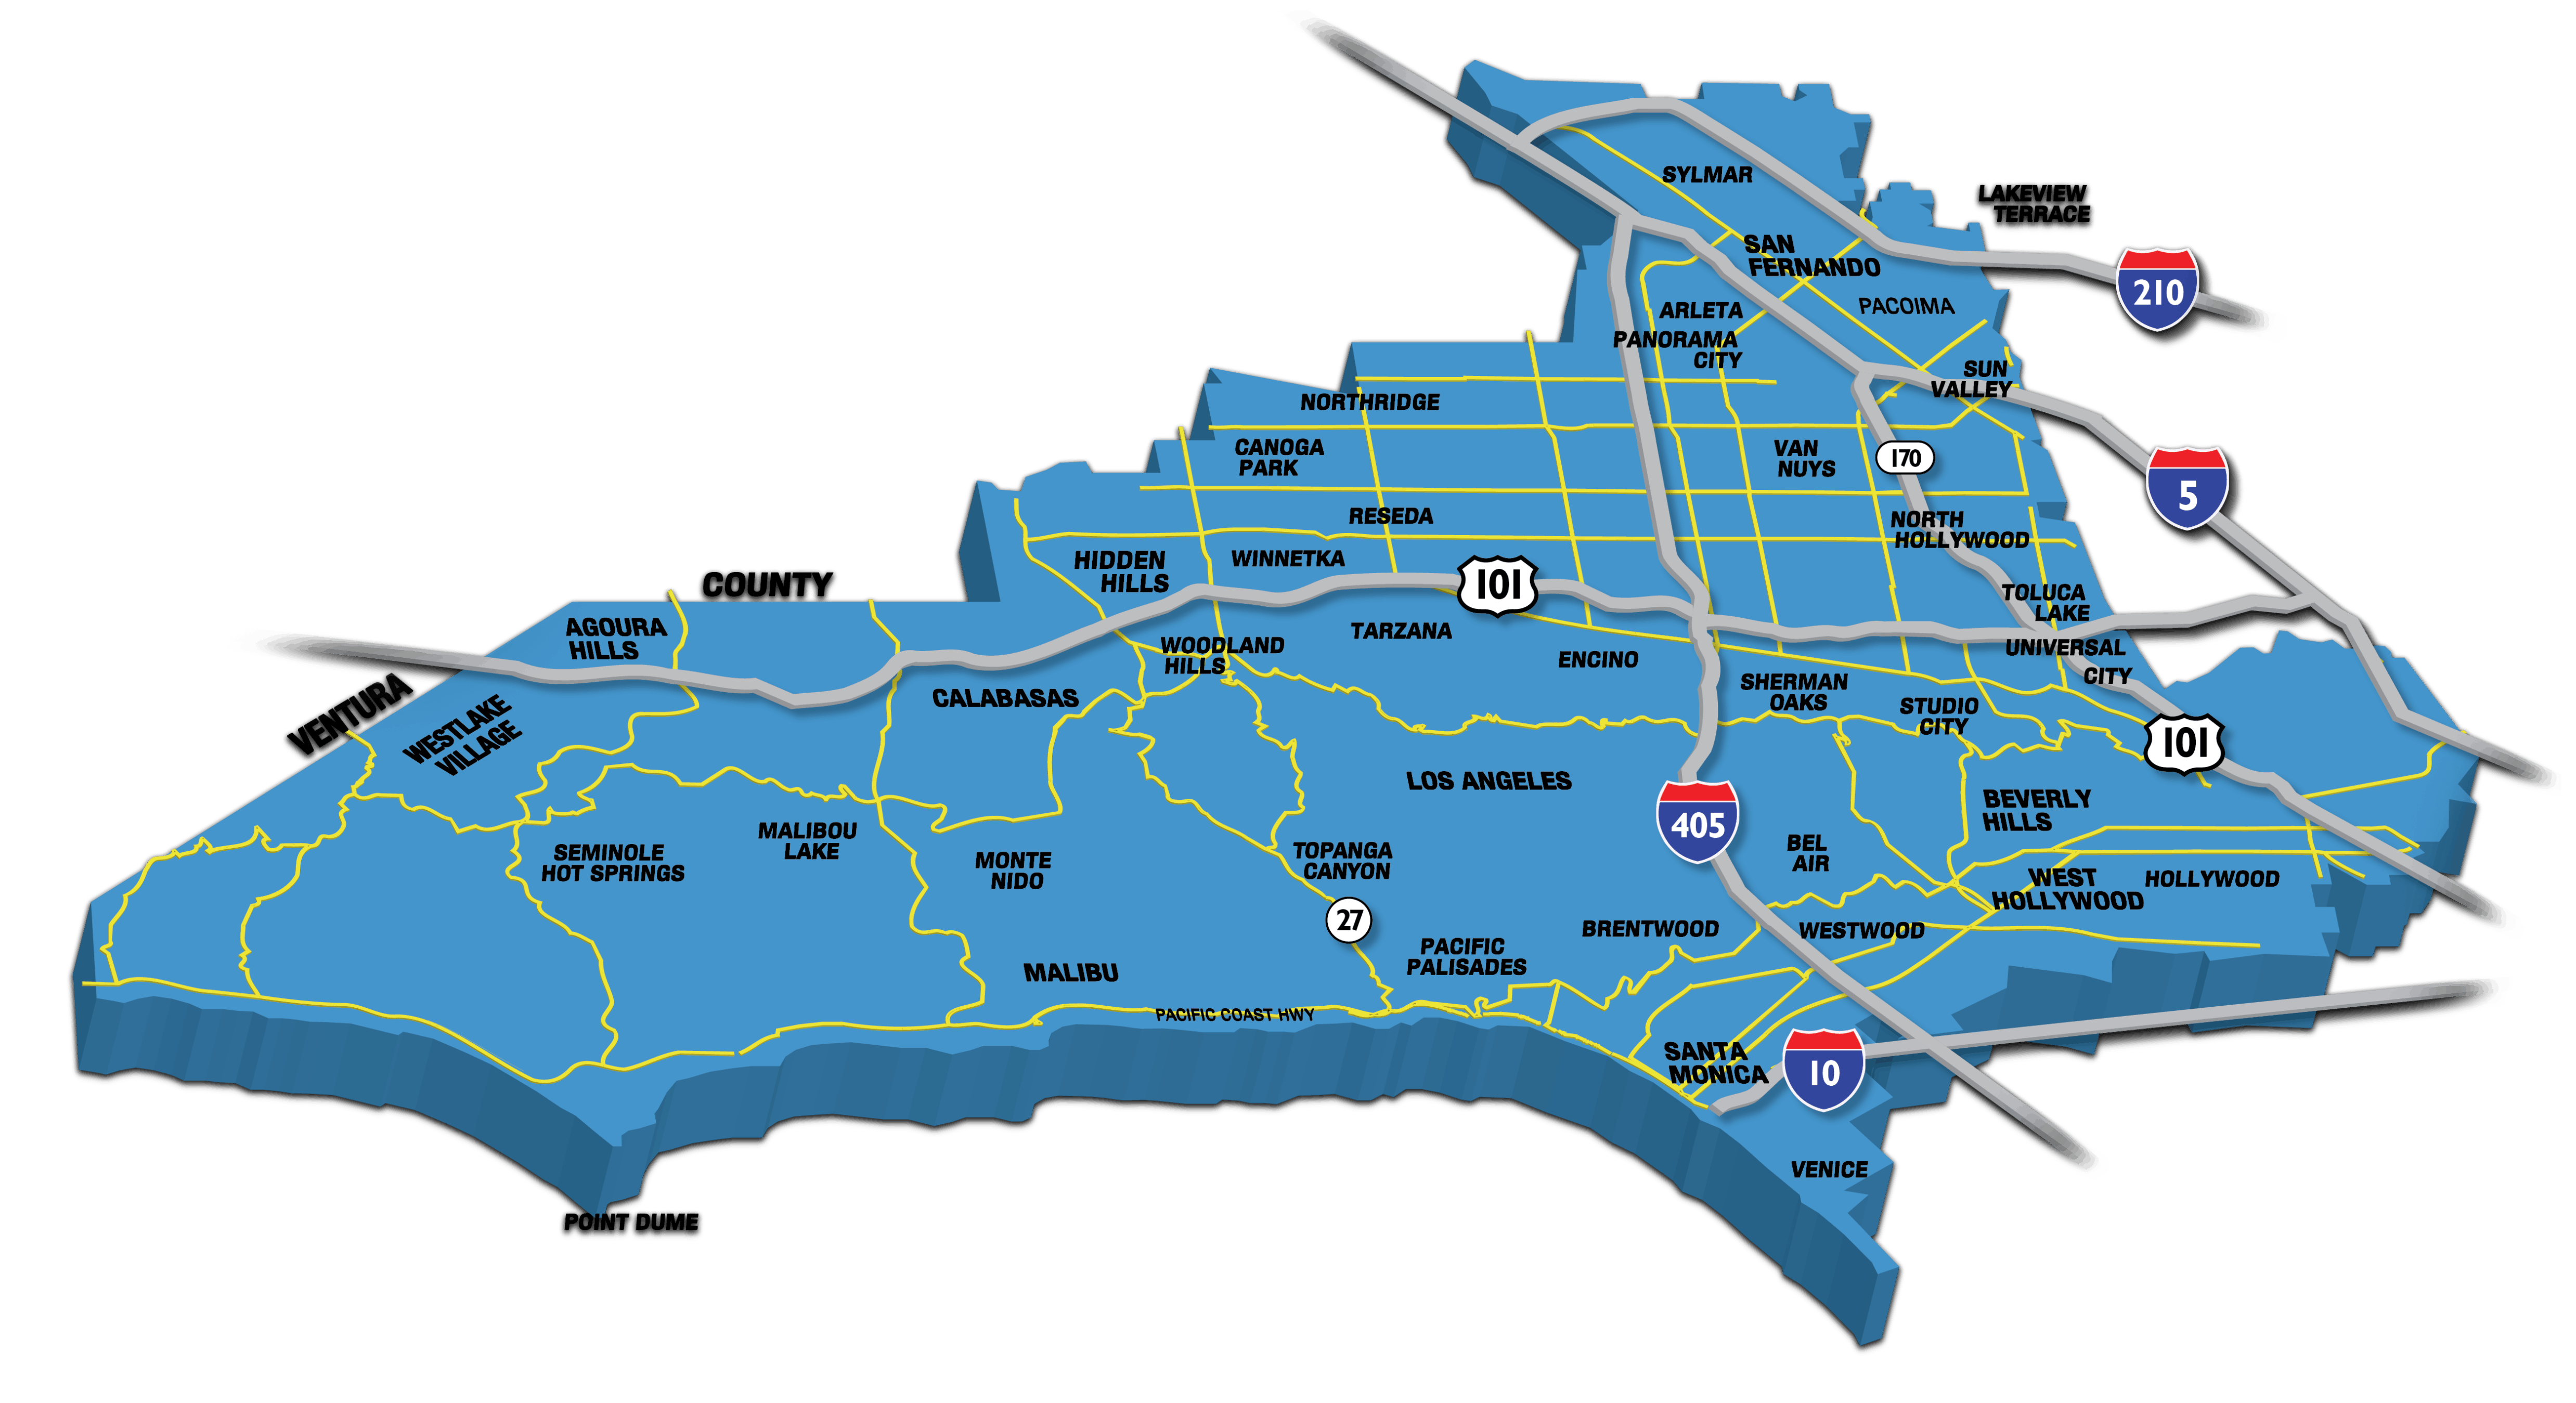 The 20rd District